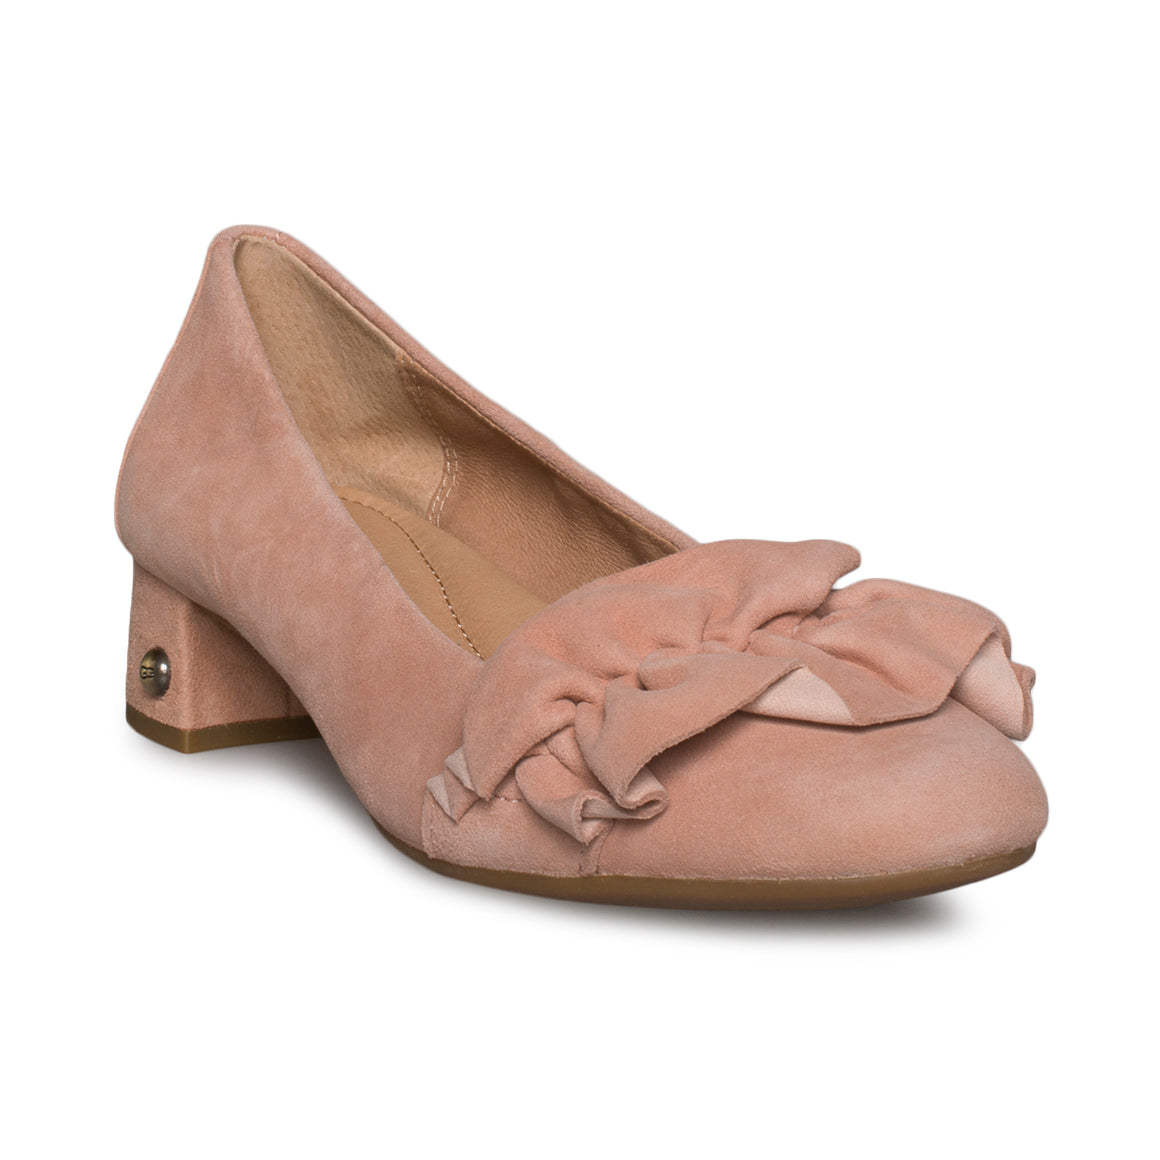 UGG Fifi Suntan Shoes - Women's